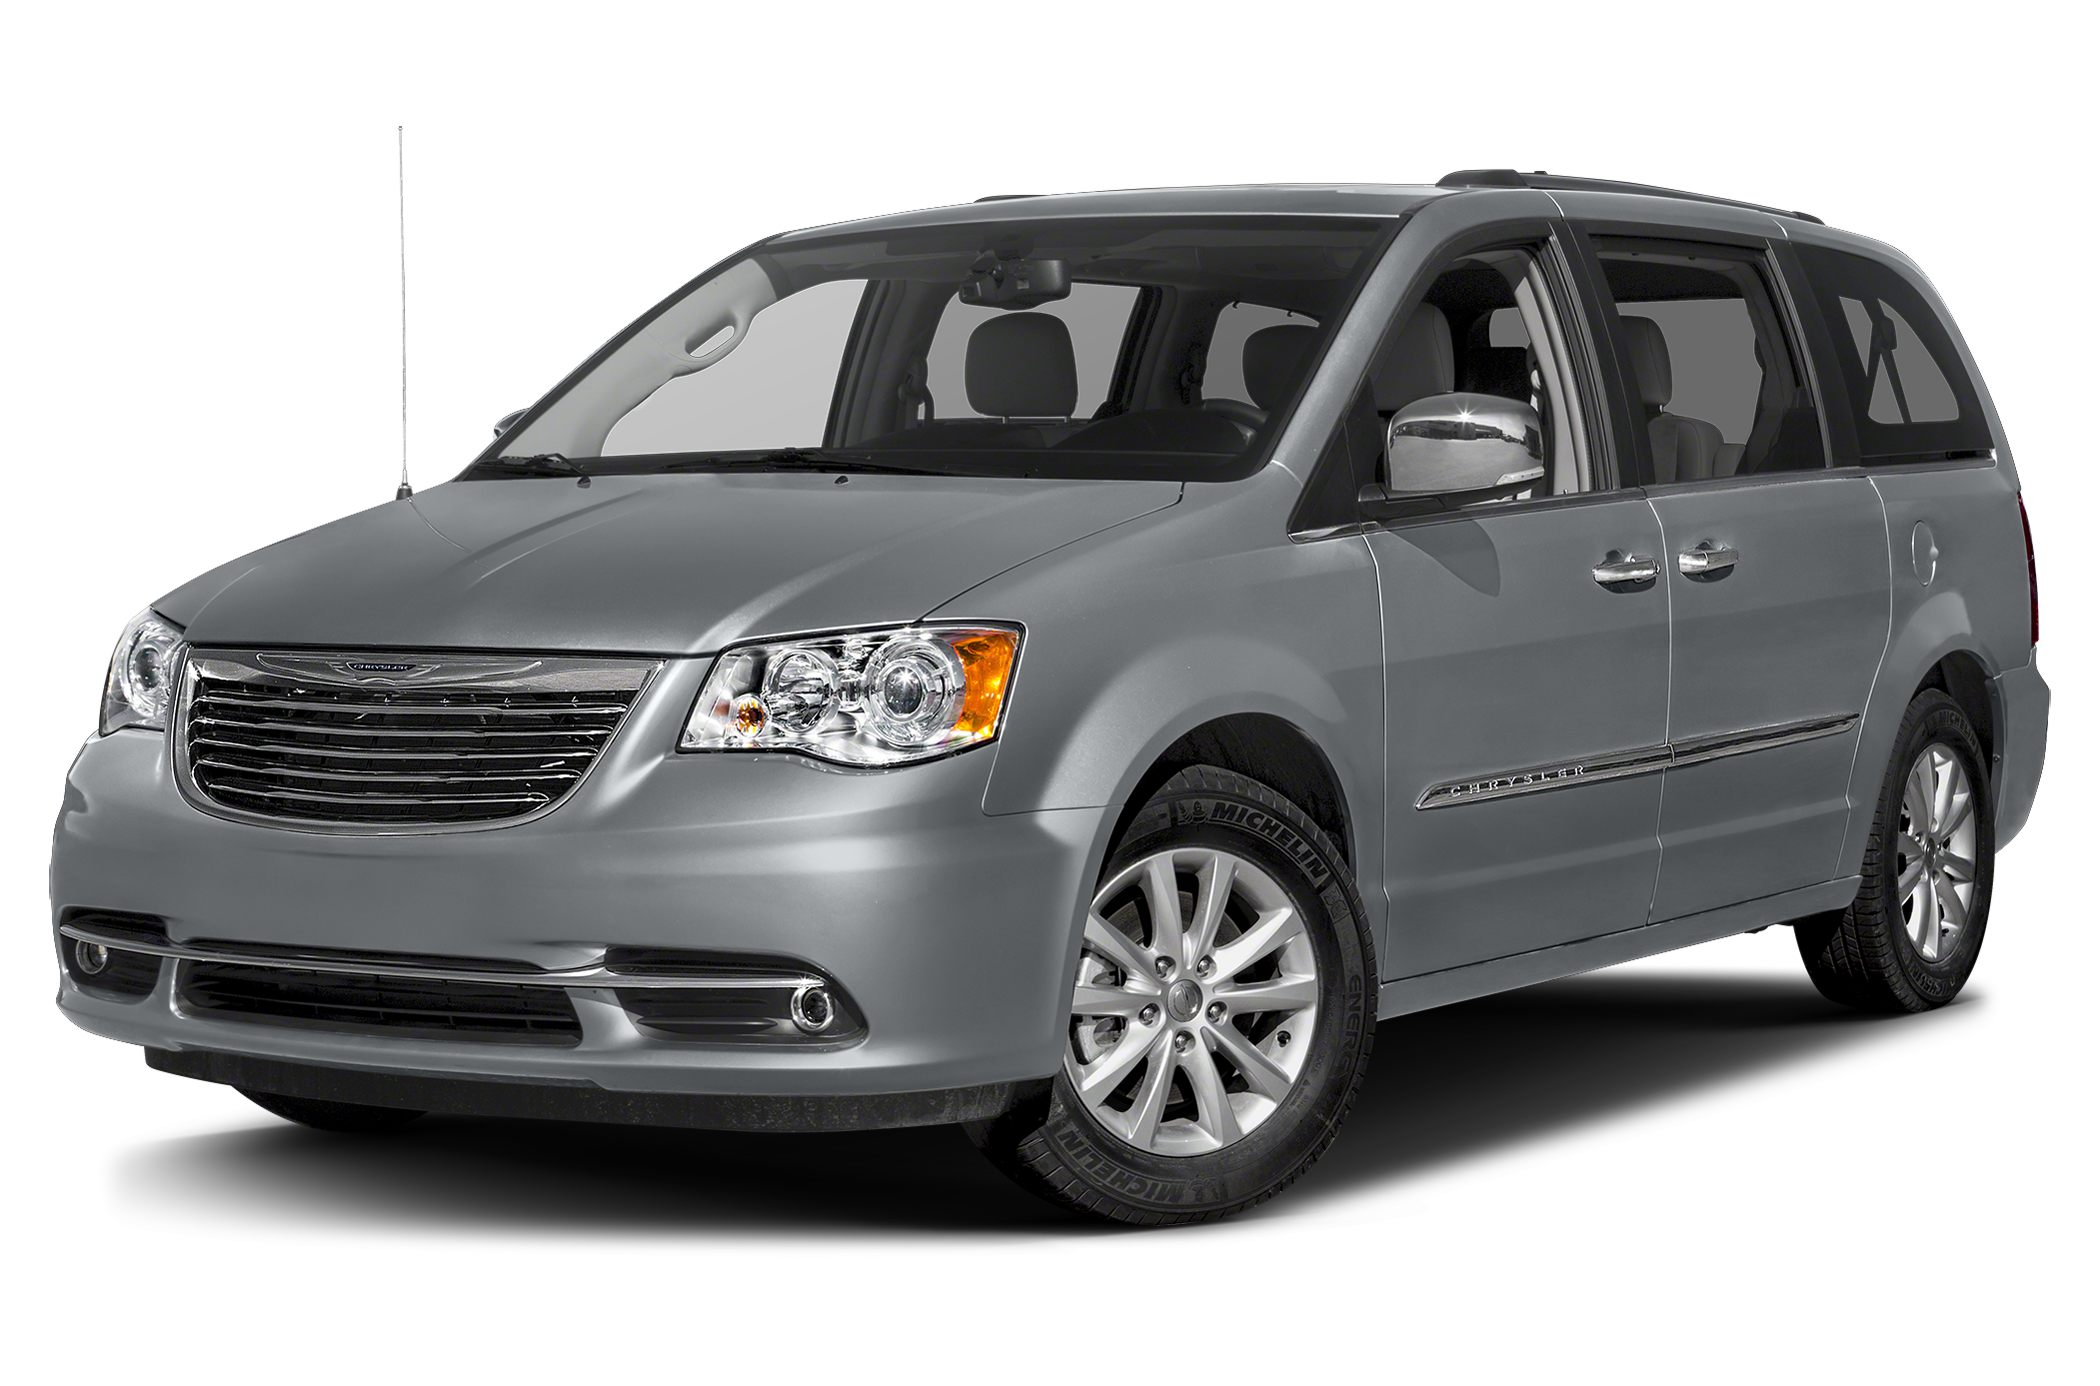 2015 CHRYSLER TOWN AND COUNTRY LIMITED PLATINUM